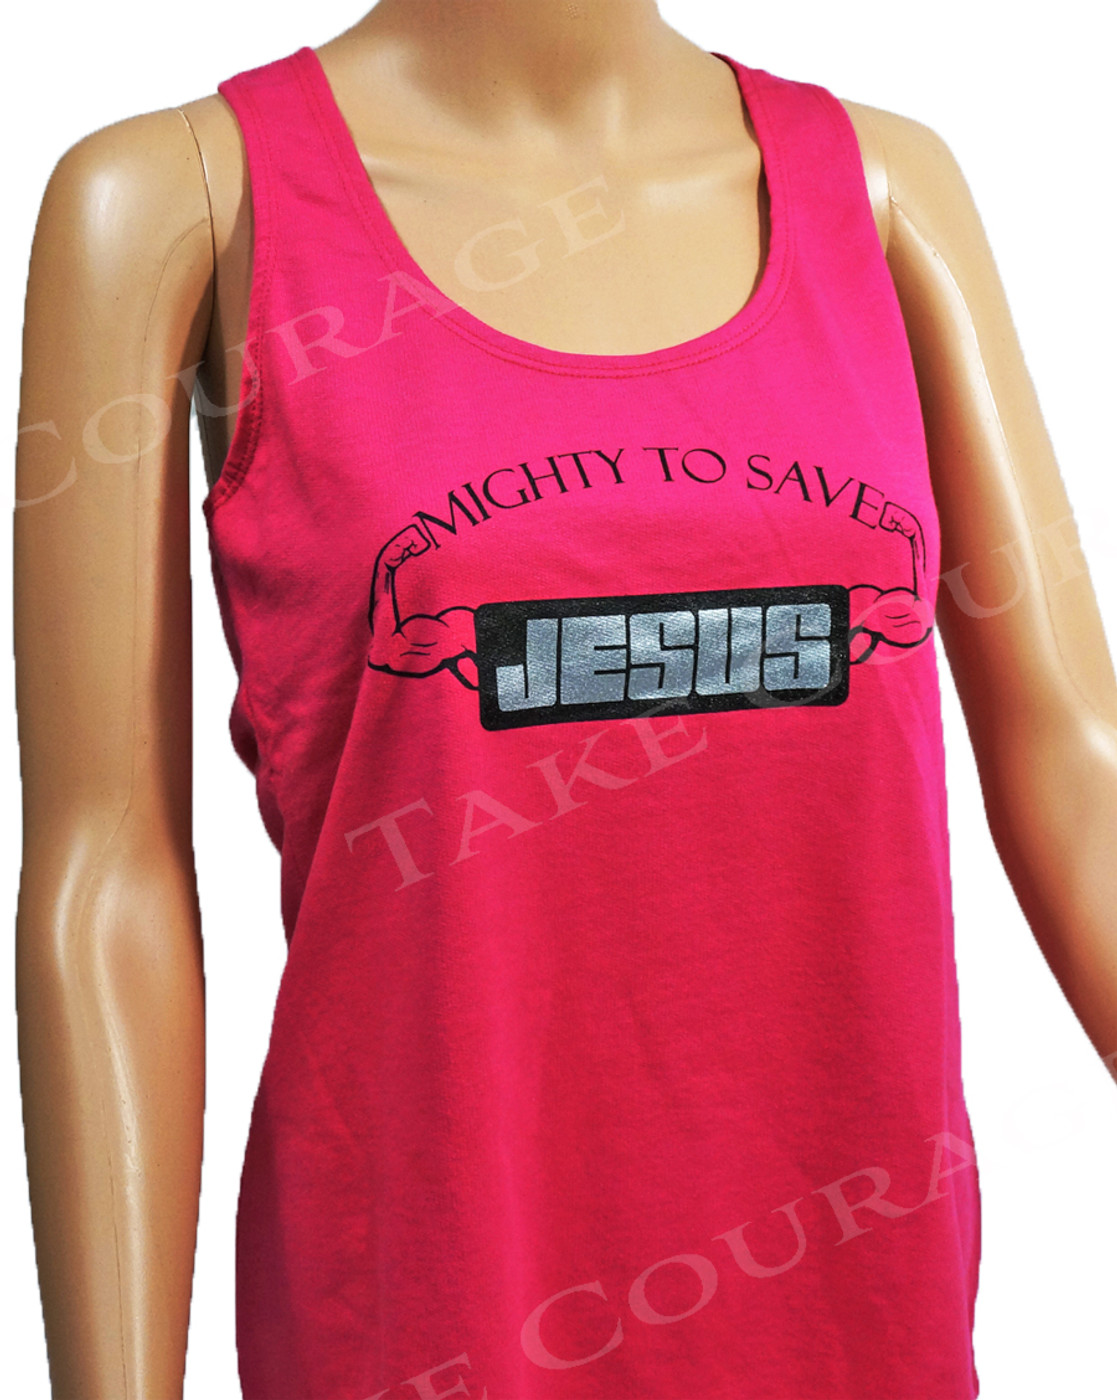 Jesus Muscle - Christian Shirt - Pink